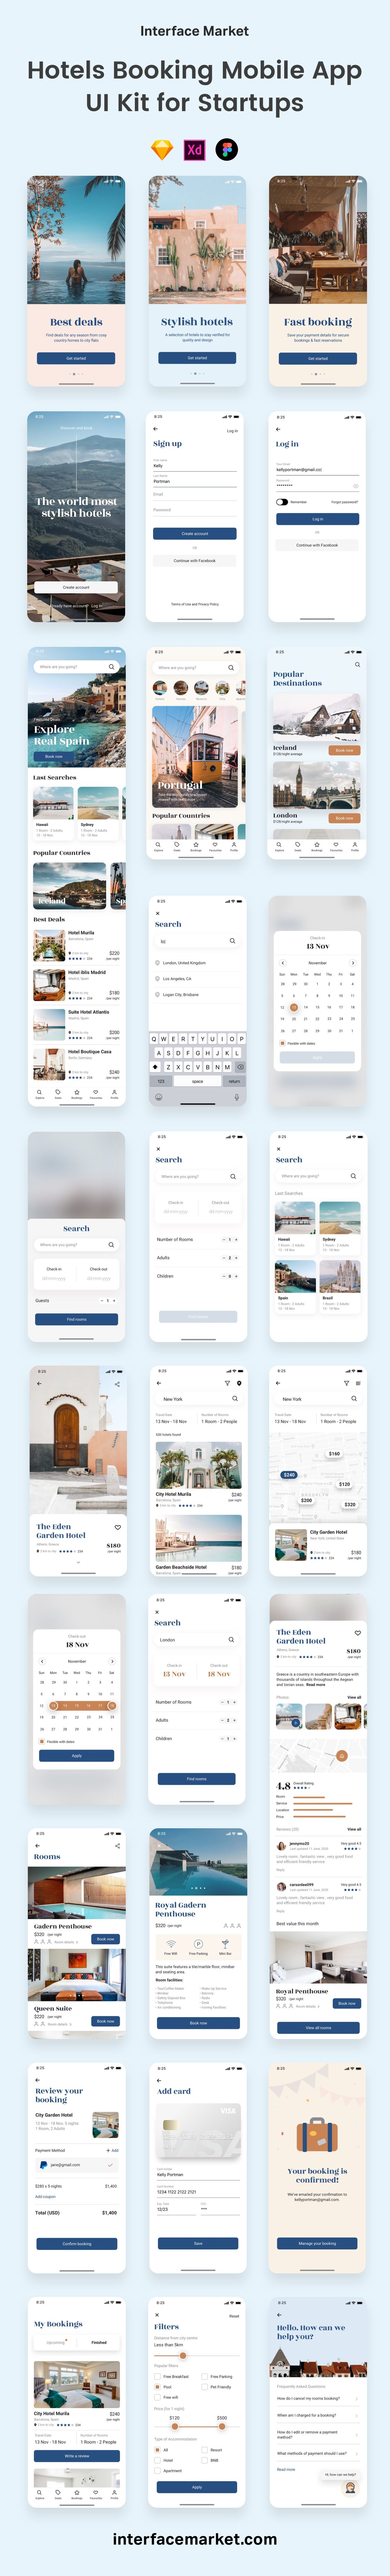 Athens Hotel Booking App UI Kit - Design Hotel Travel App Faster  — Interface Market